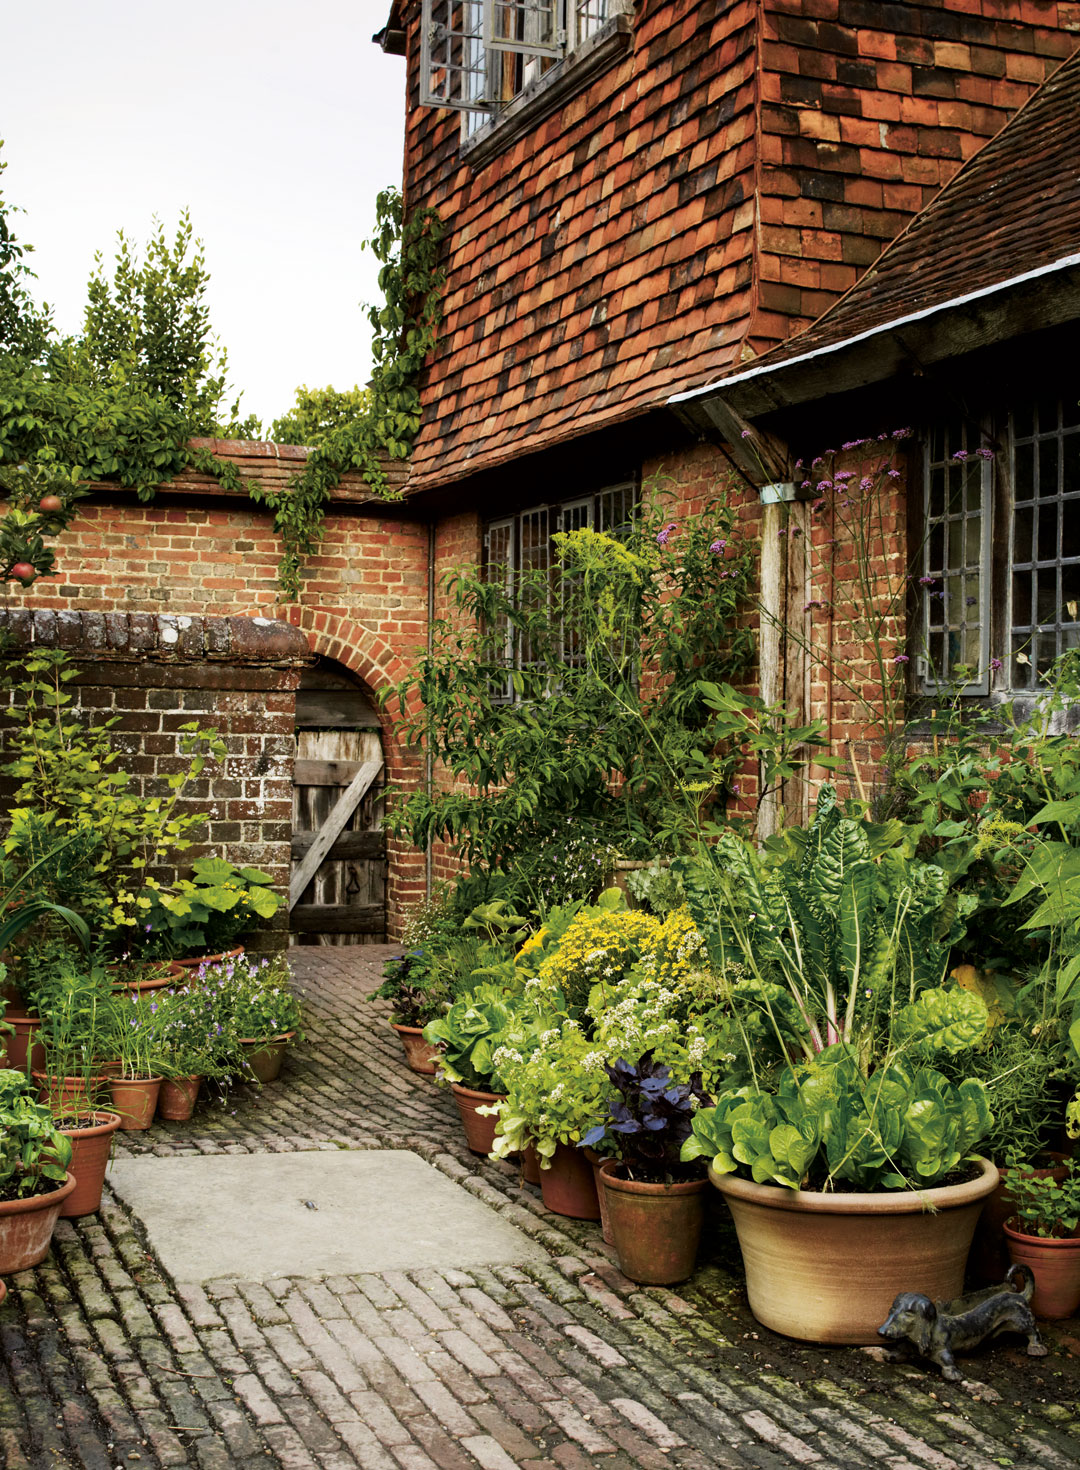 The kitchen courtyard at Great Dixter